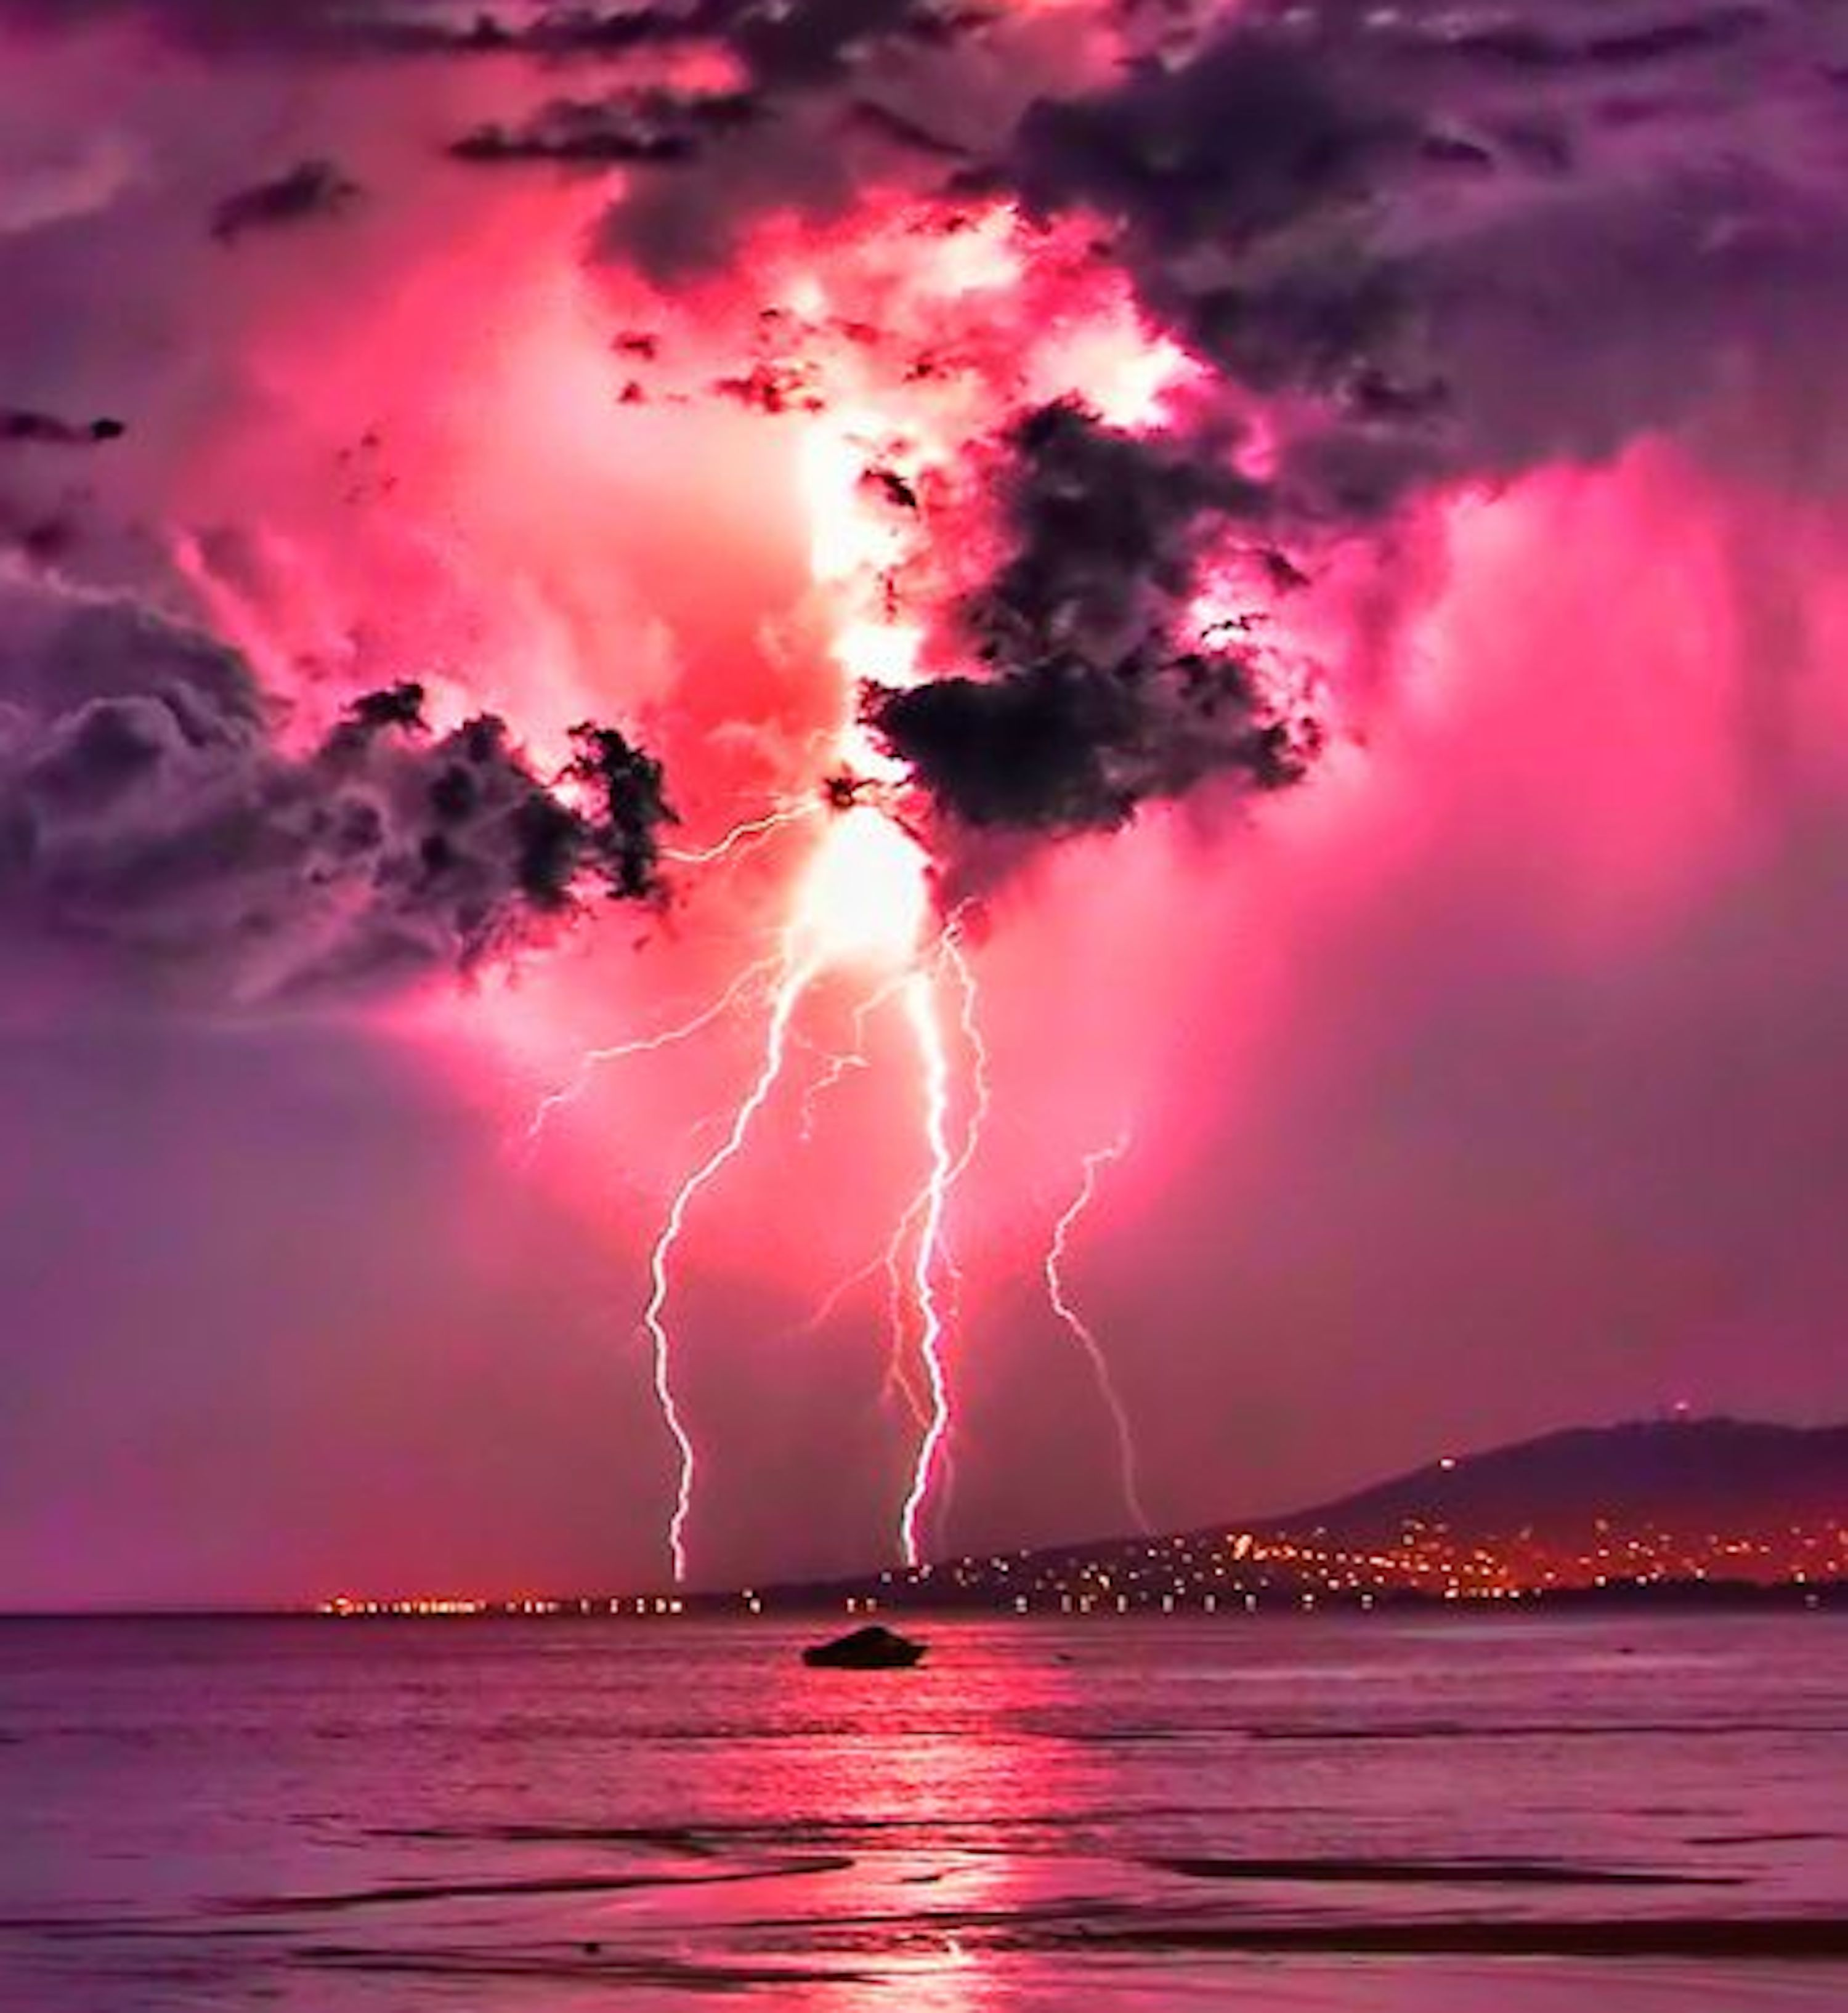 Stormy Pink Sky Wallpaper-Free HD Wallpapers